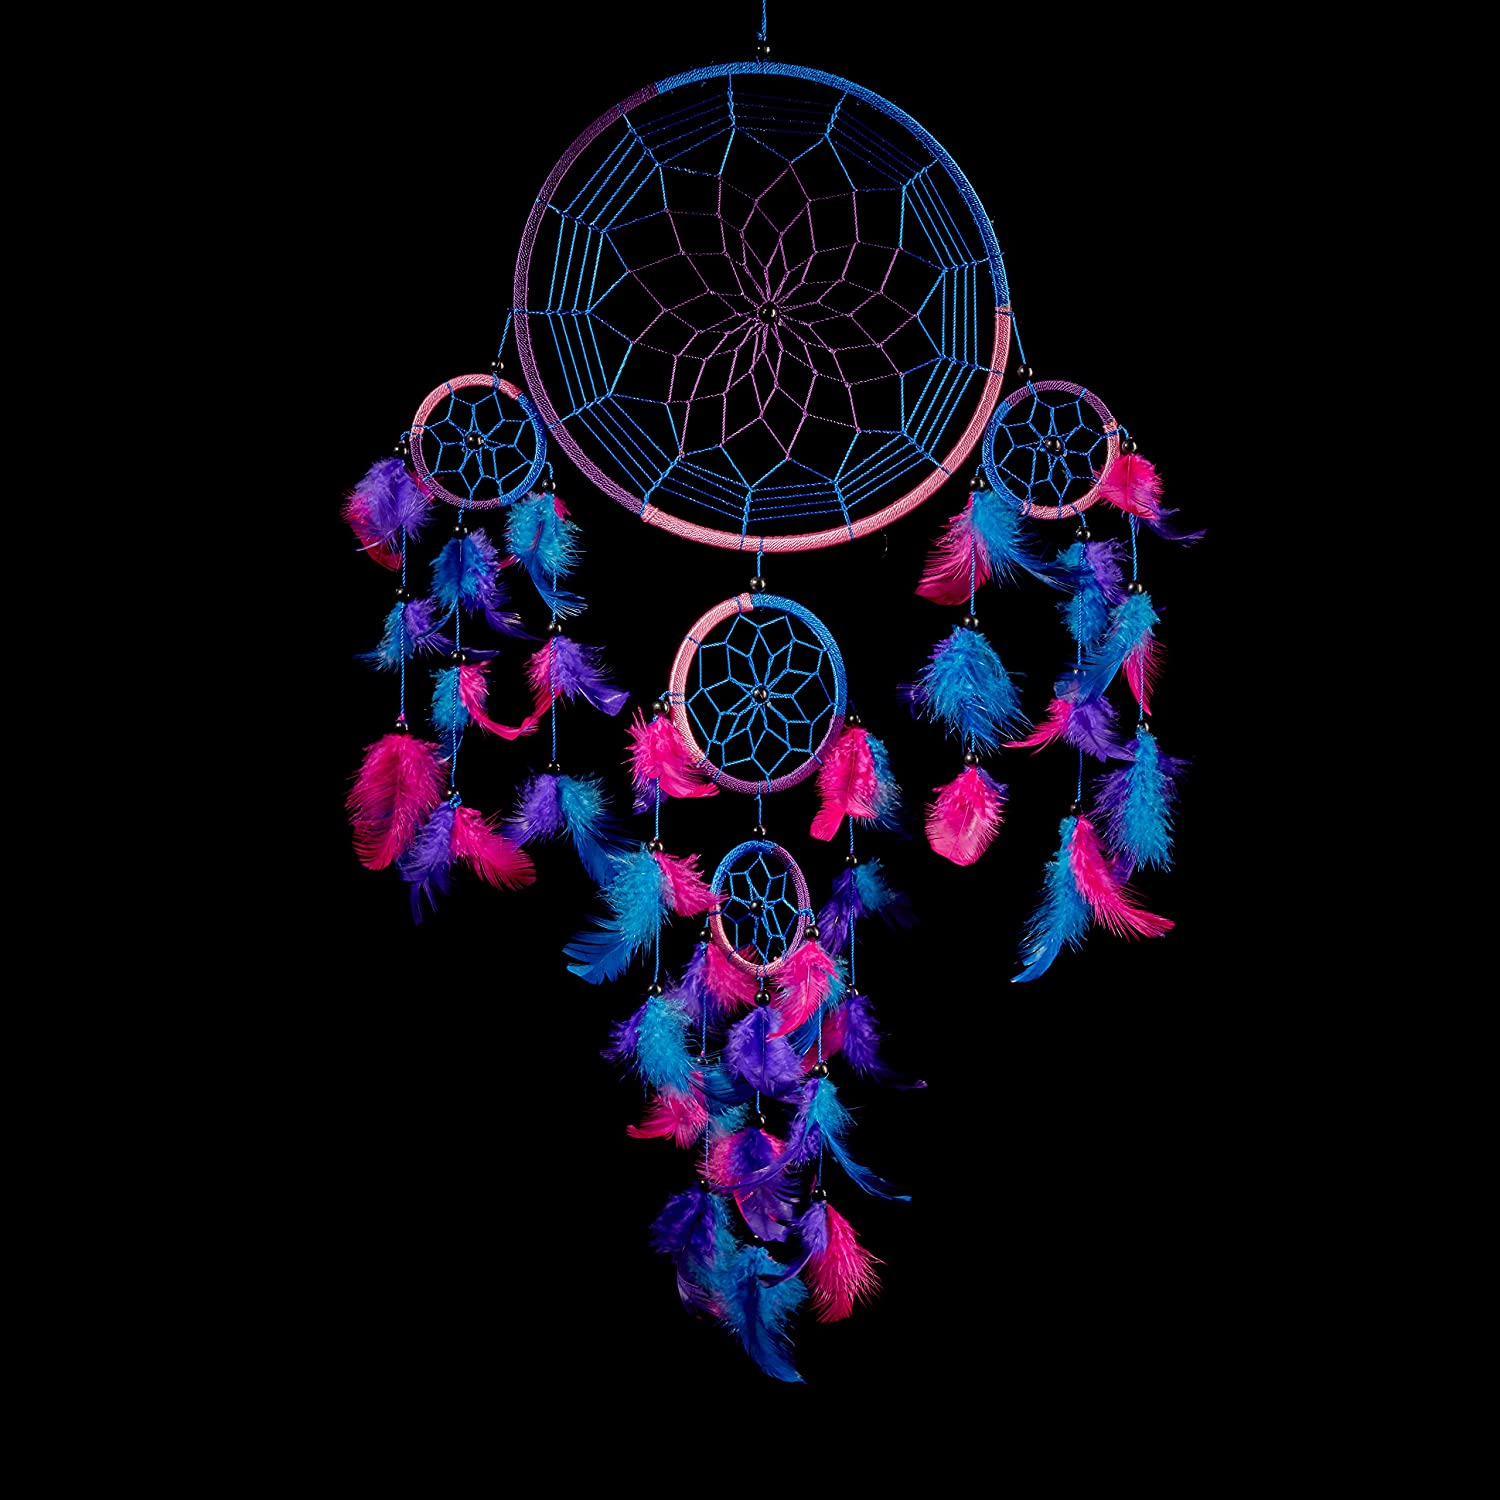 - Amazon.com: Caught Dreams Dream Catcher Traditional Indian Wall